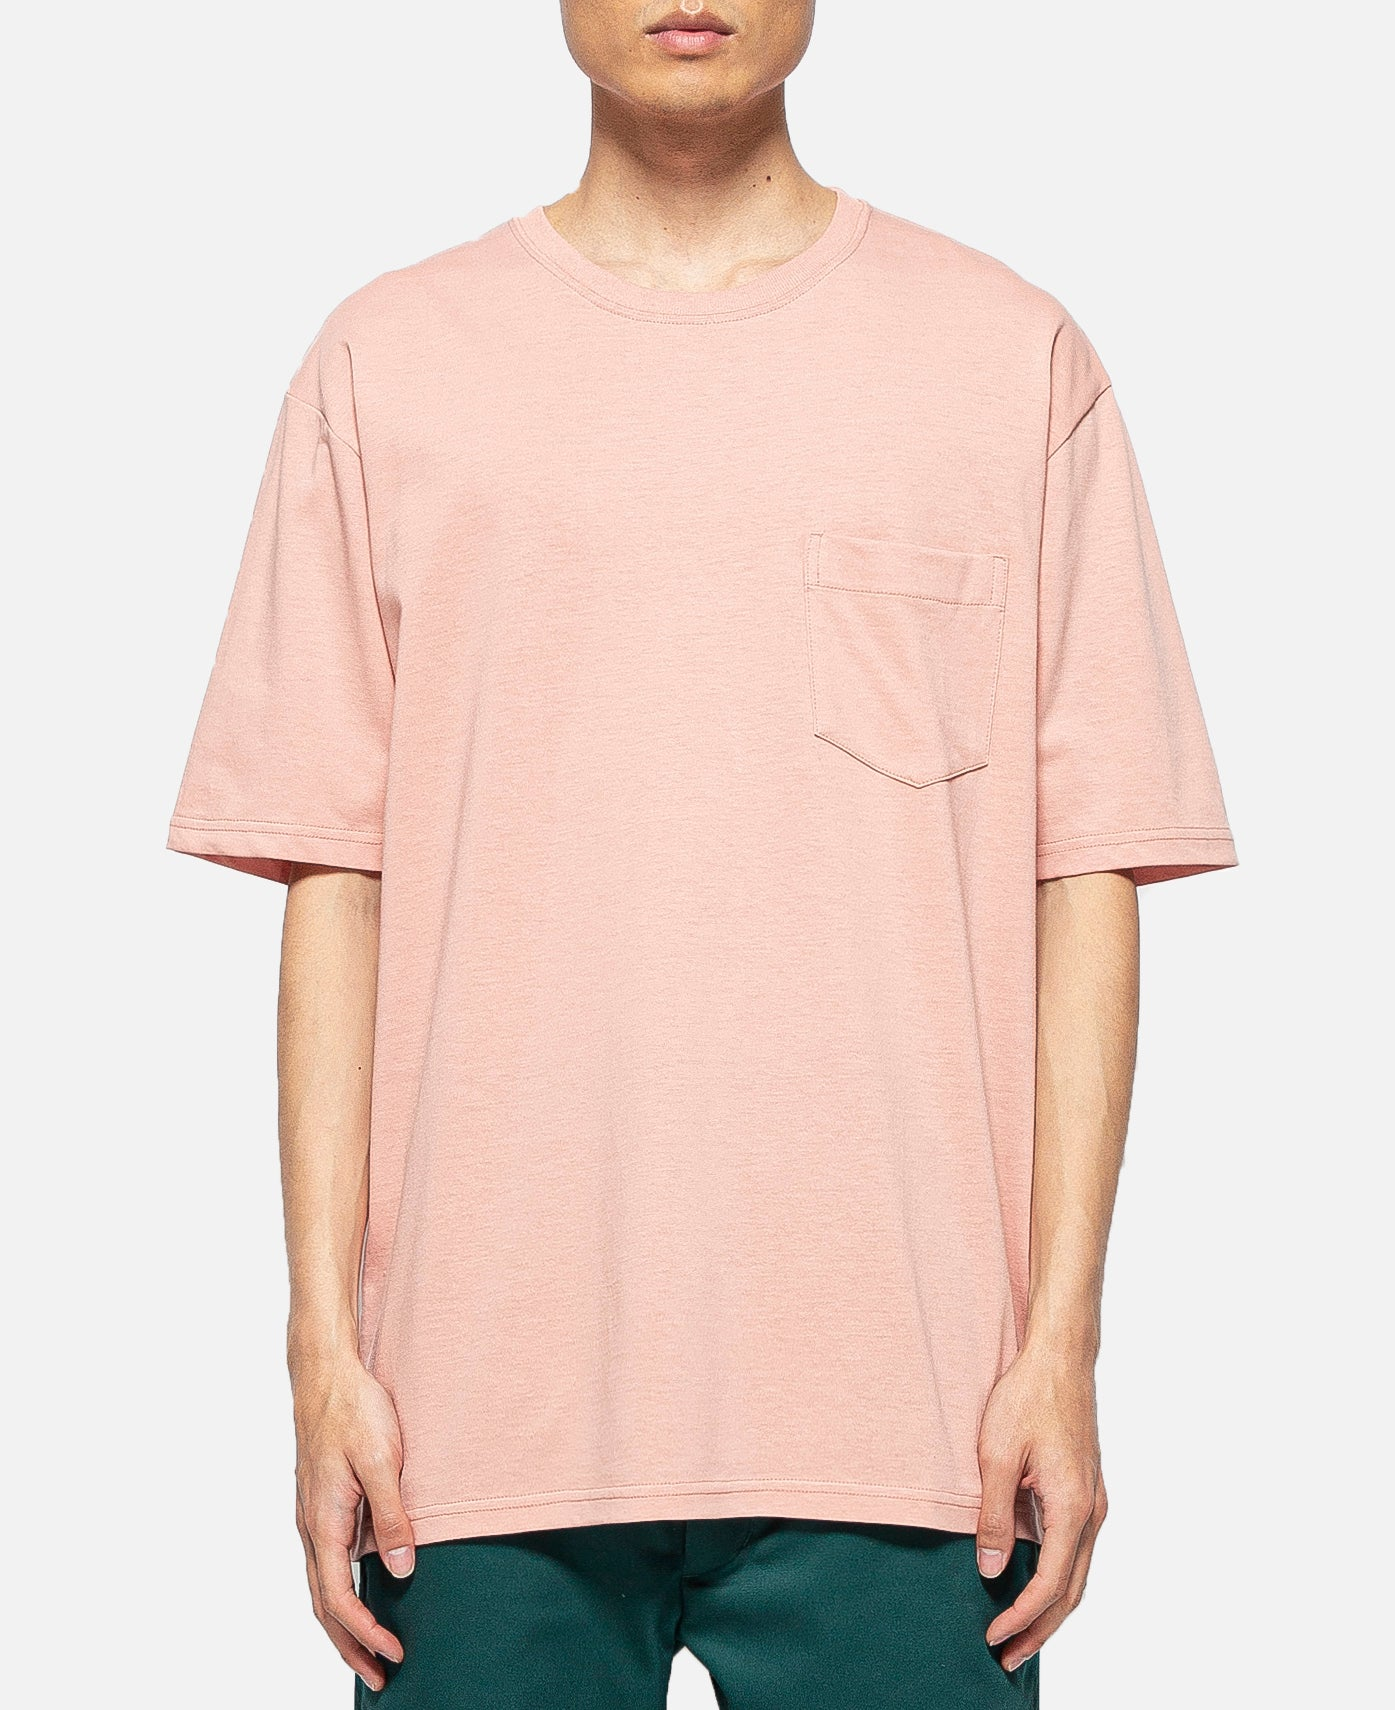 Egyptone Pocket T-Shirt (Pink)